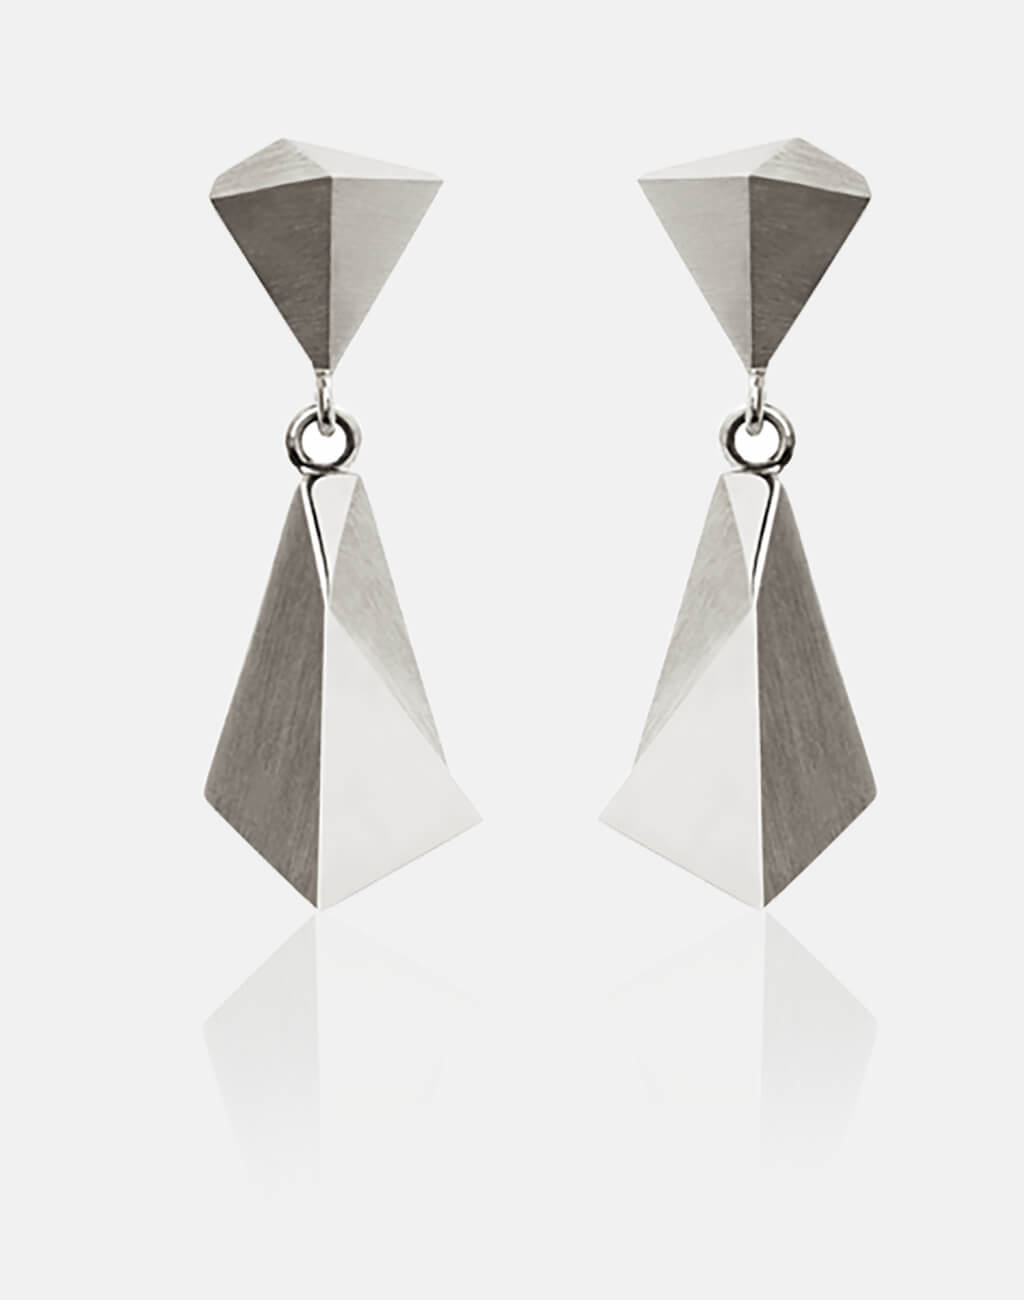 Stealth | Ohrringe, Ohrhänger 950/- Platin | earrings 950/- platinum | SYNO-Schmuck.com